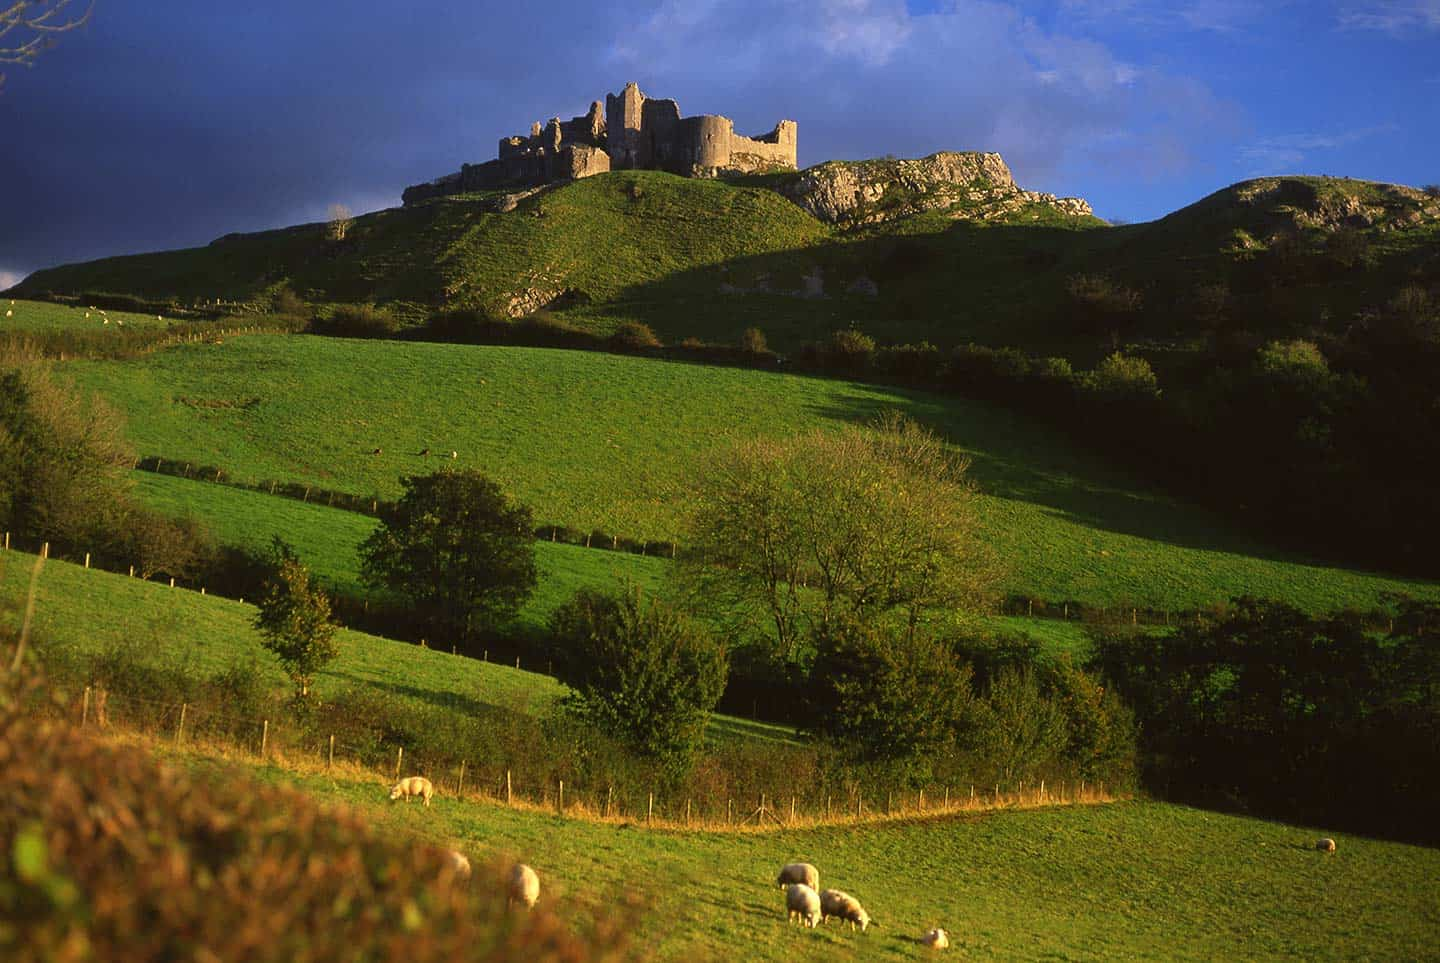 Image of Carreg Cennen Castle, Wales